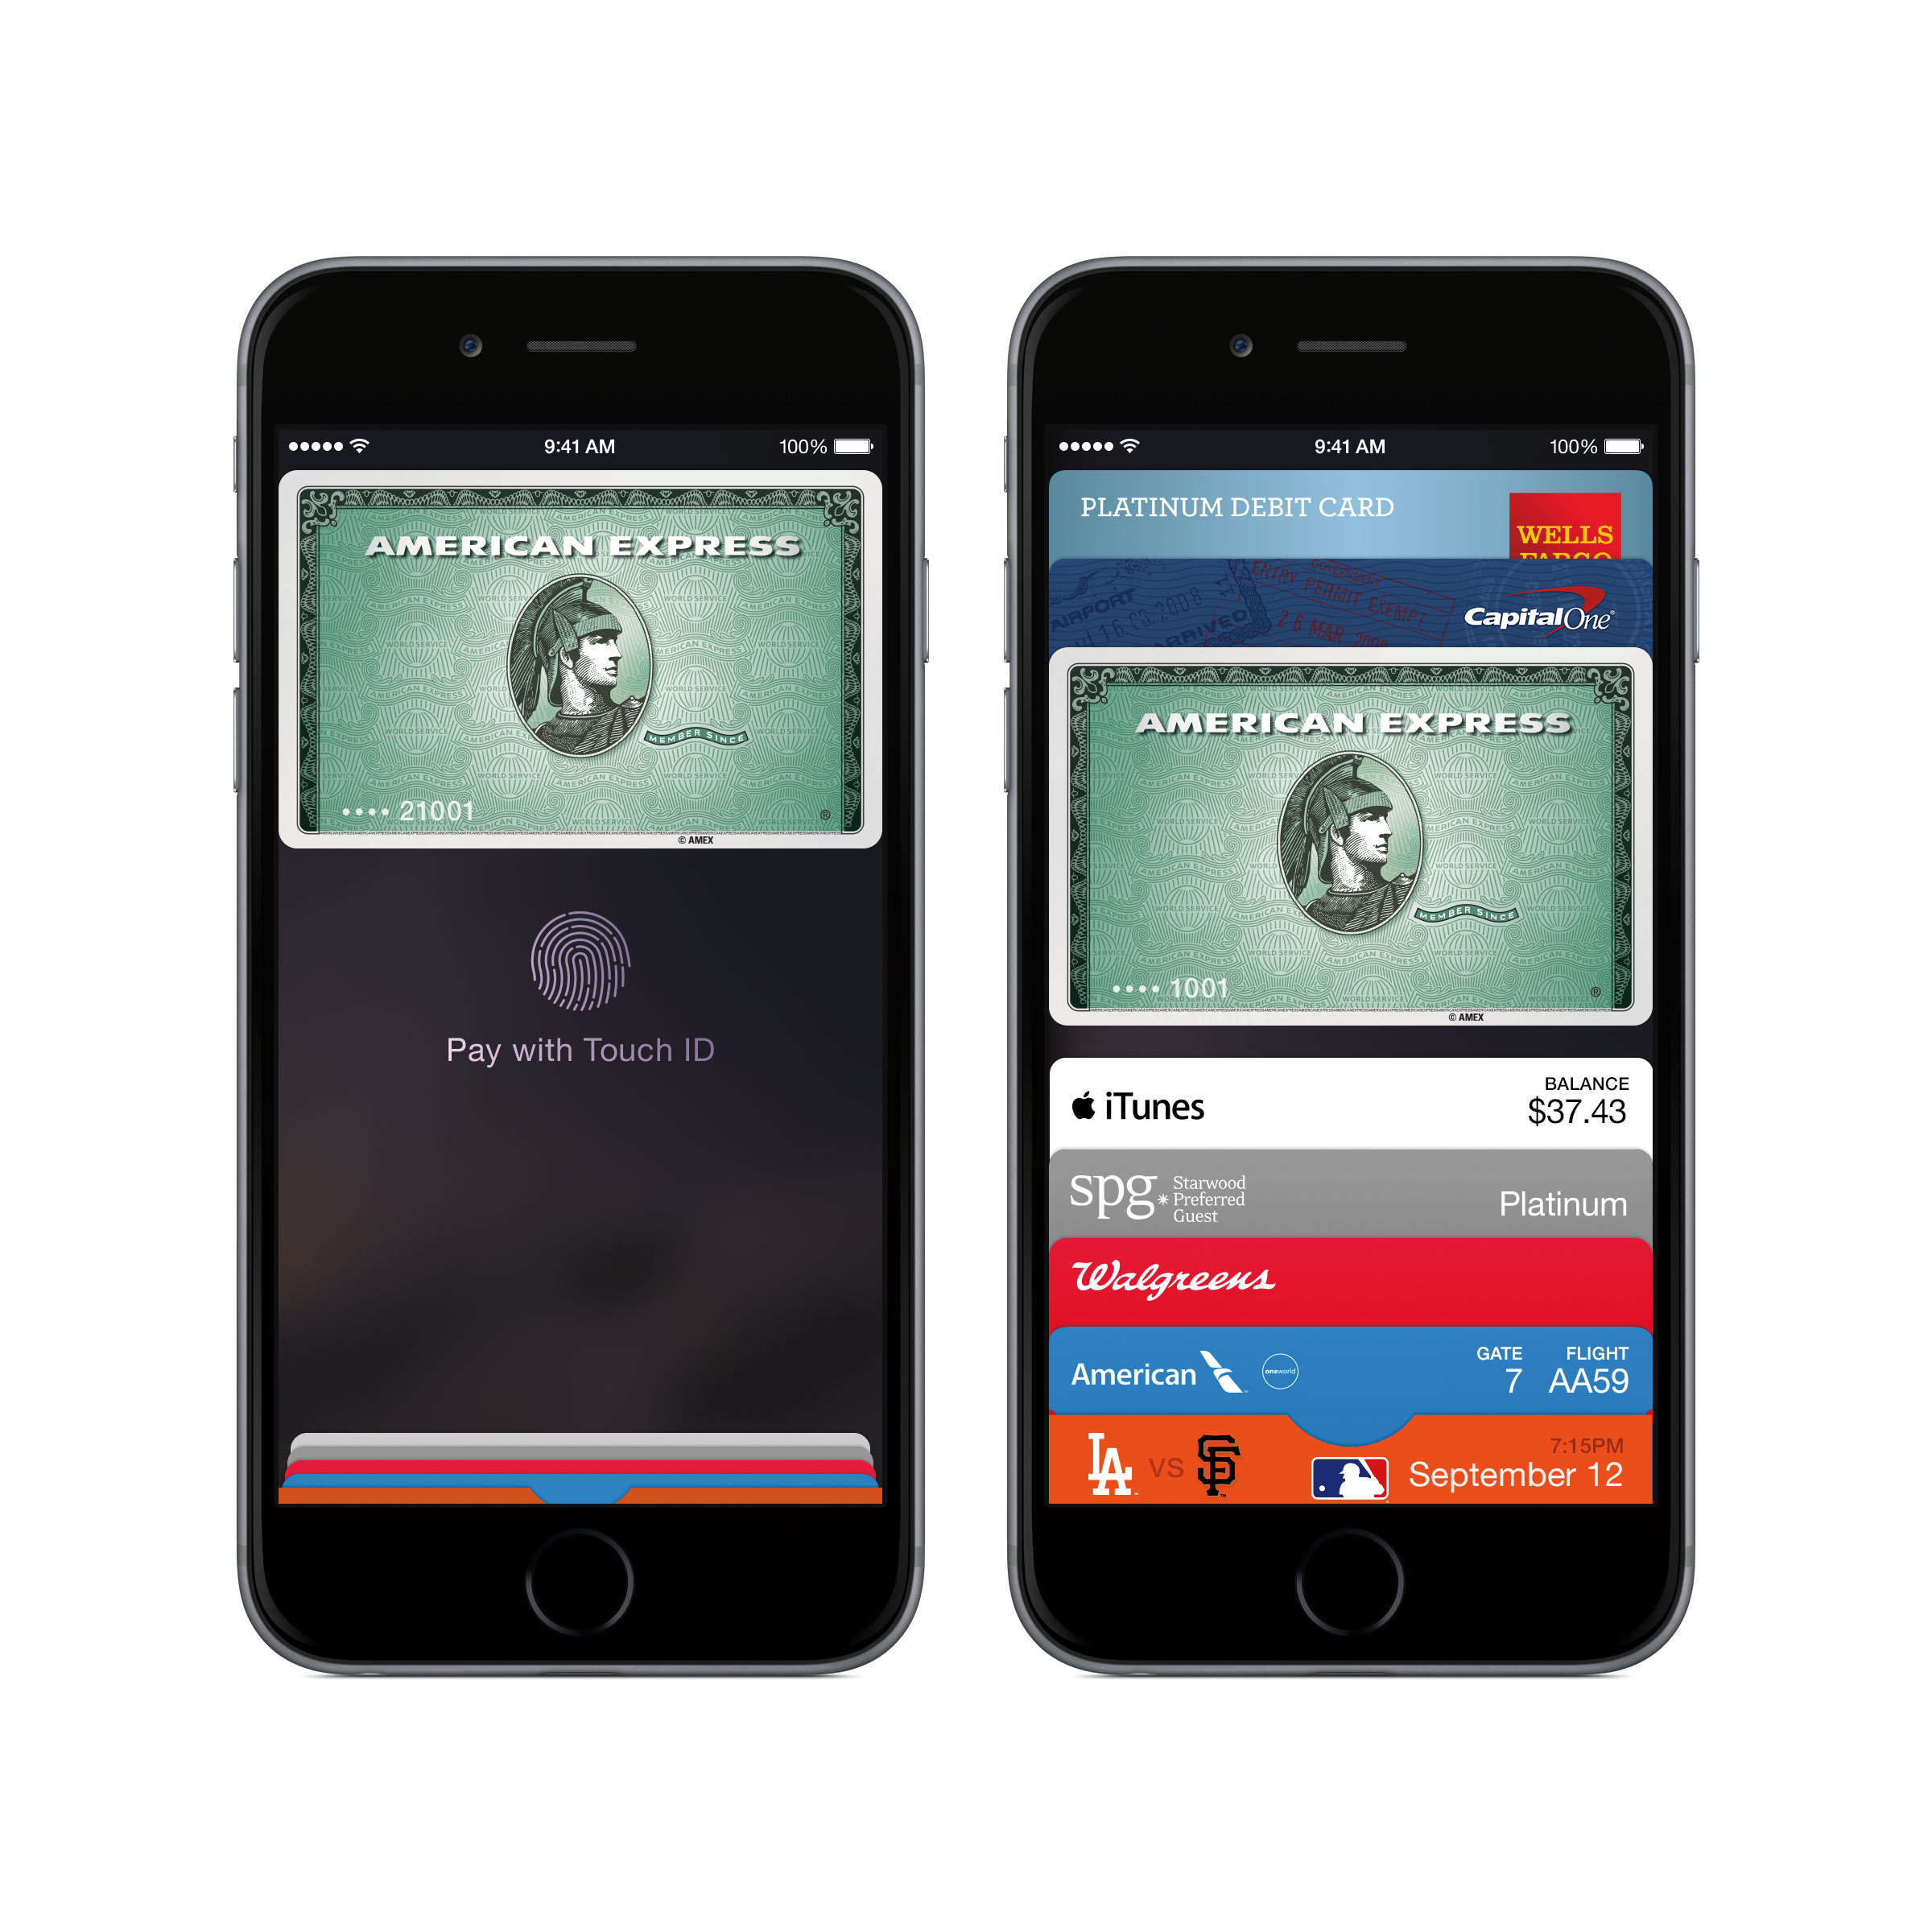 Apple Pay setup step-by-step: It's unsurprisingly easy and fast